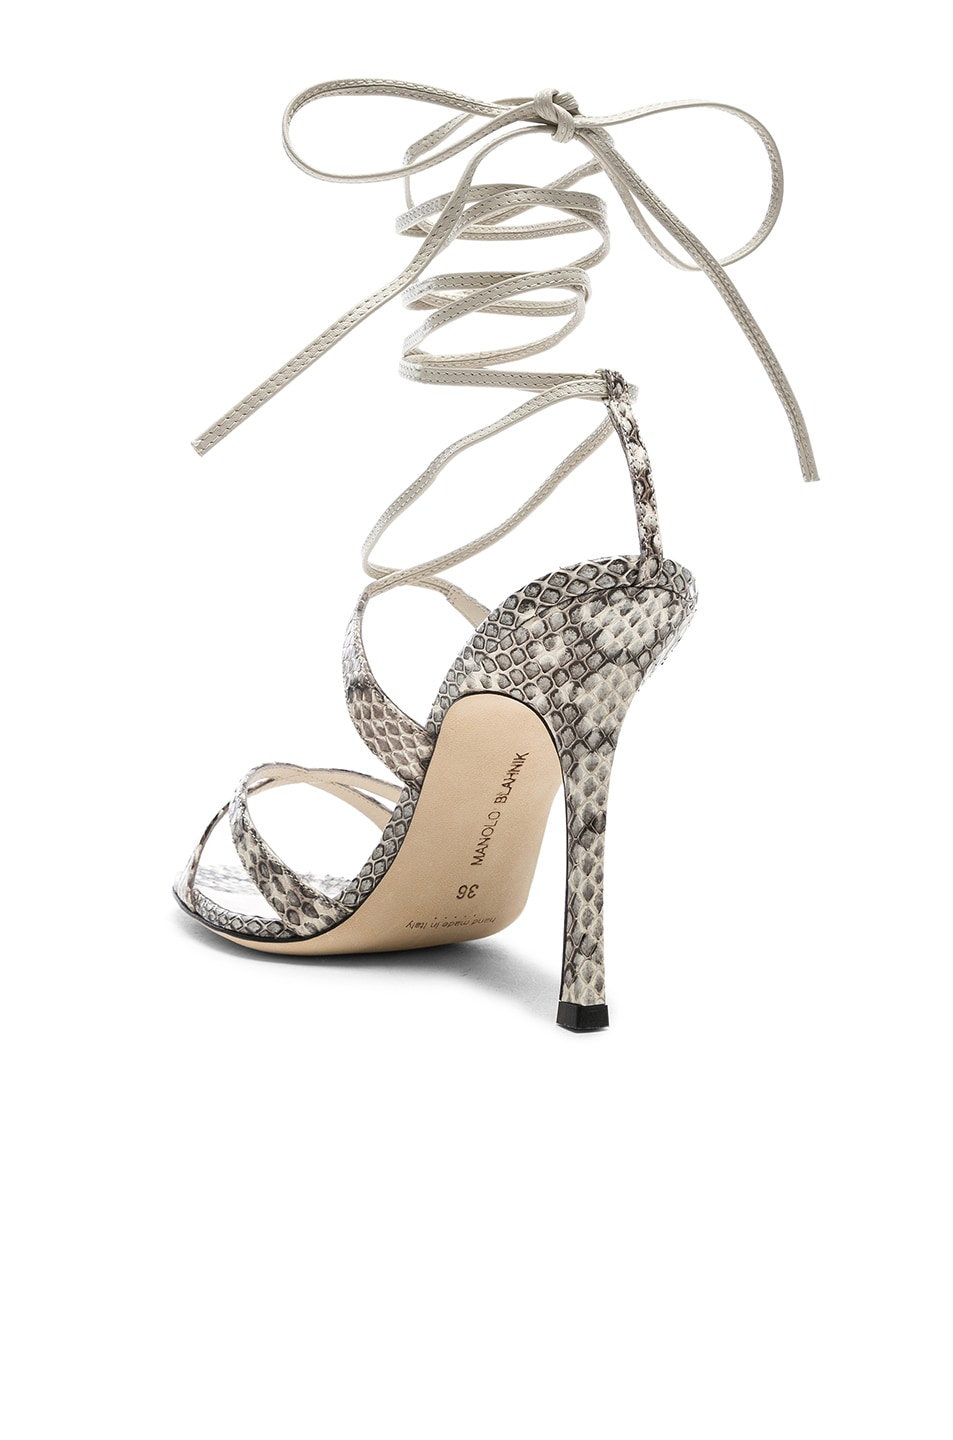 Image 3 of Manolo Blahnik Criss 105 Sandals in Black & White Natural Watersnake